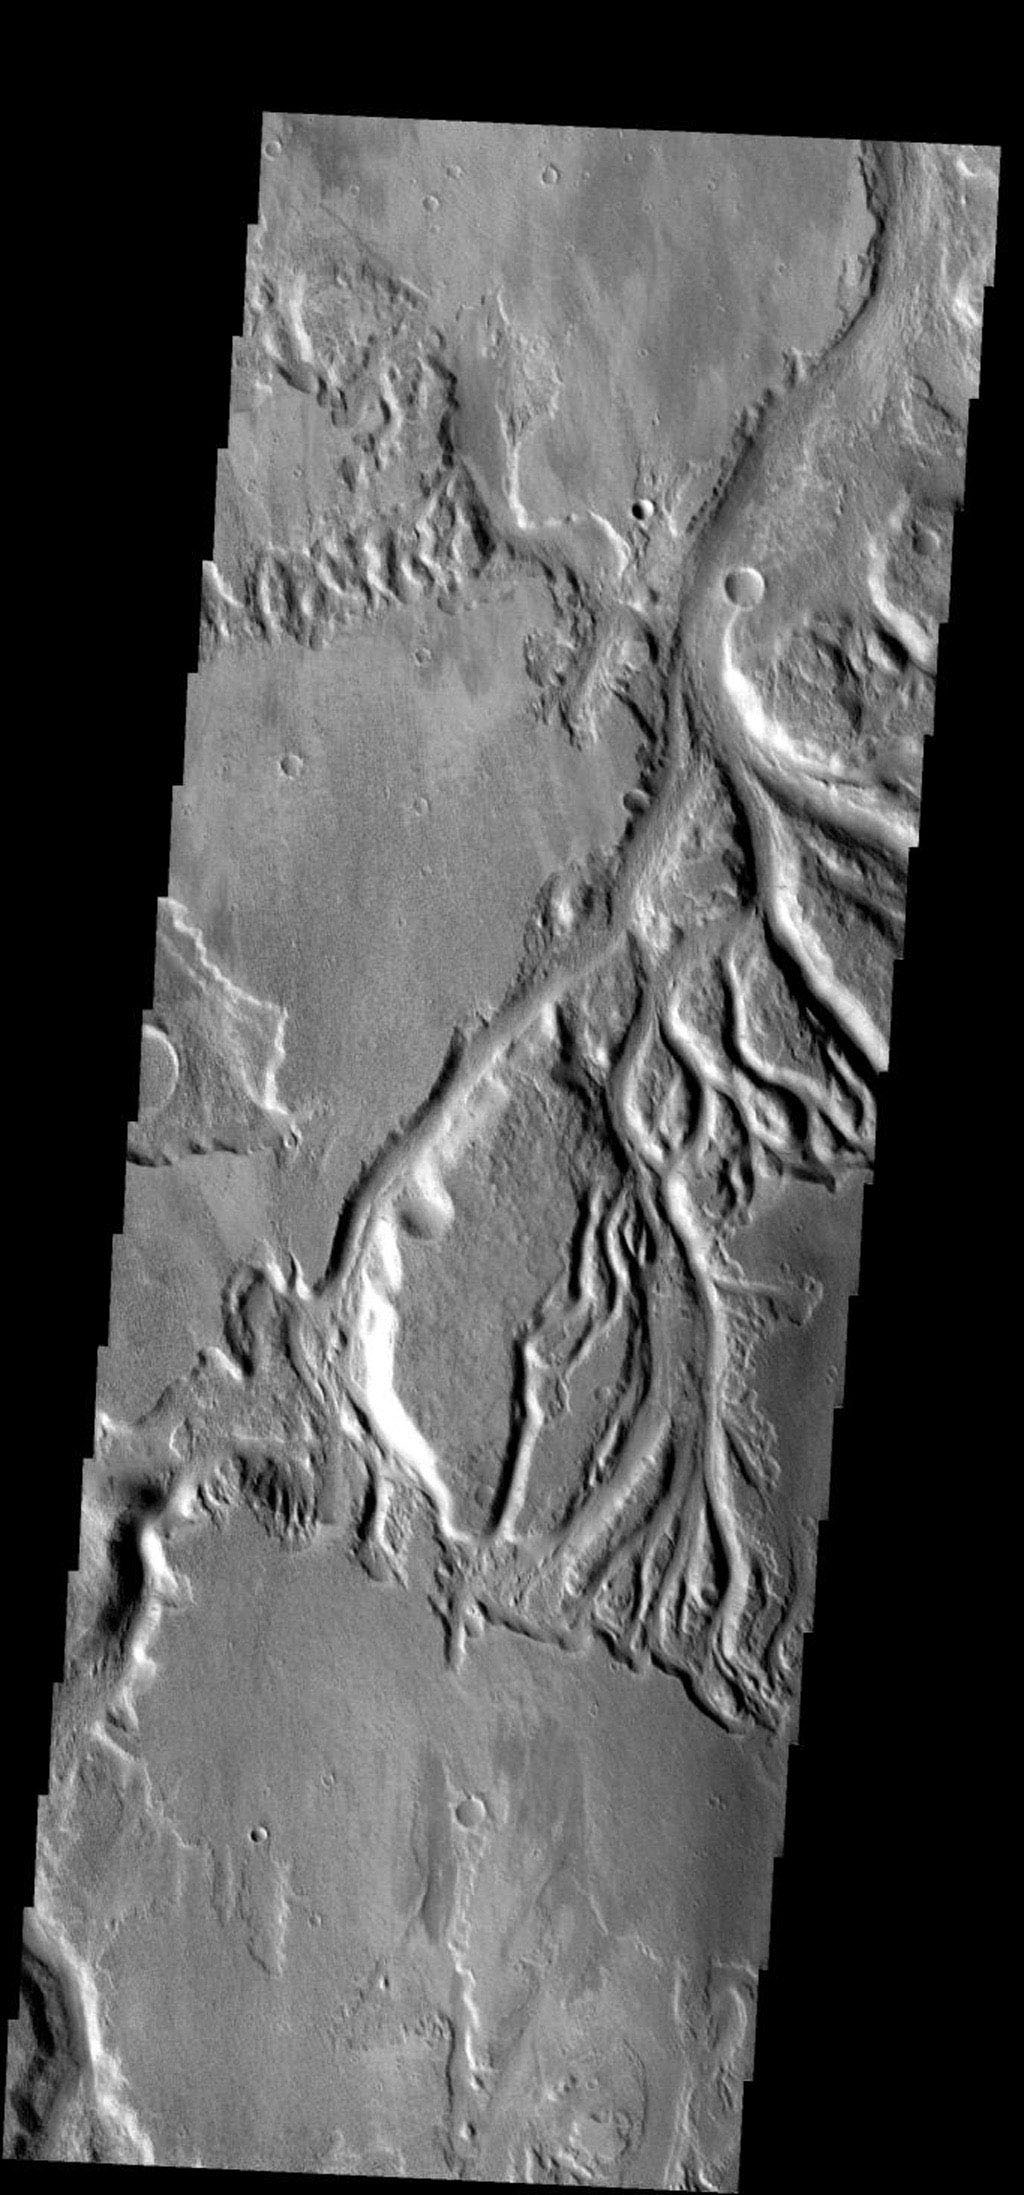 These small channels join to become Sabis Vallis on Mars as seen by NASA's 2001 Mars Odyssey spacecraft.